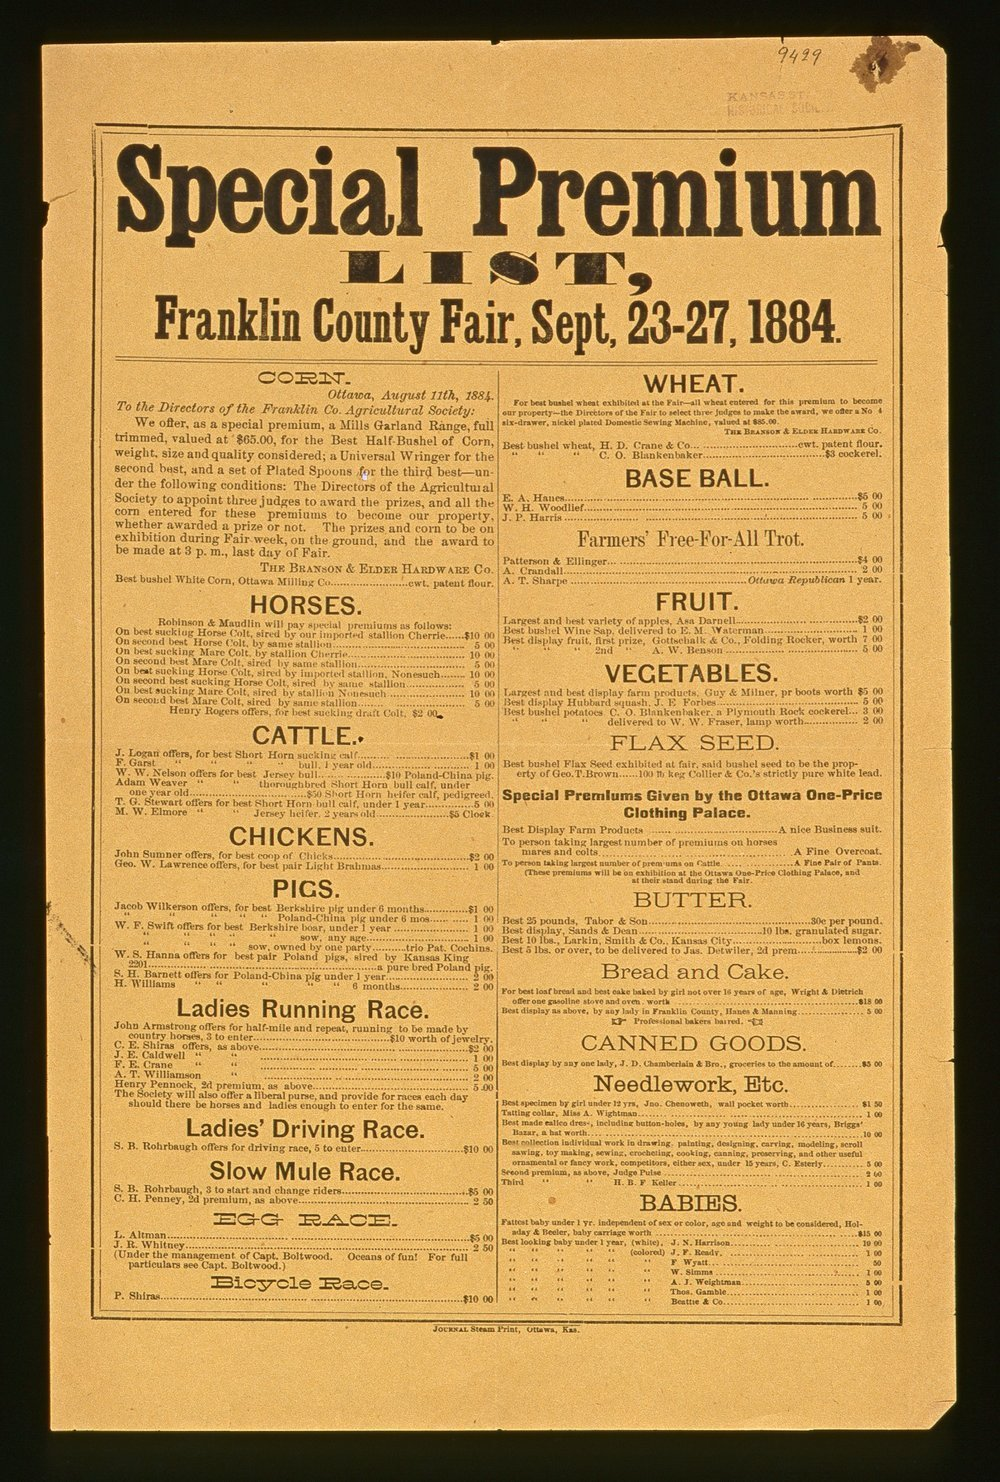 Special premium list, Franklin County fair